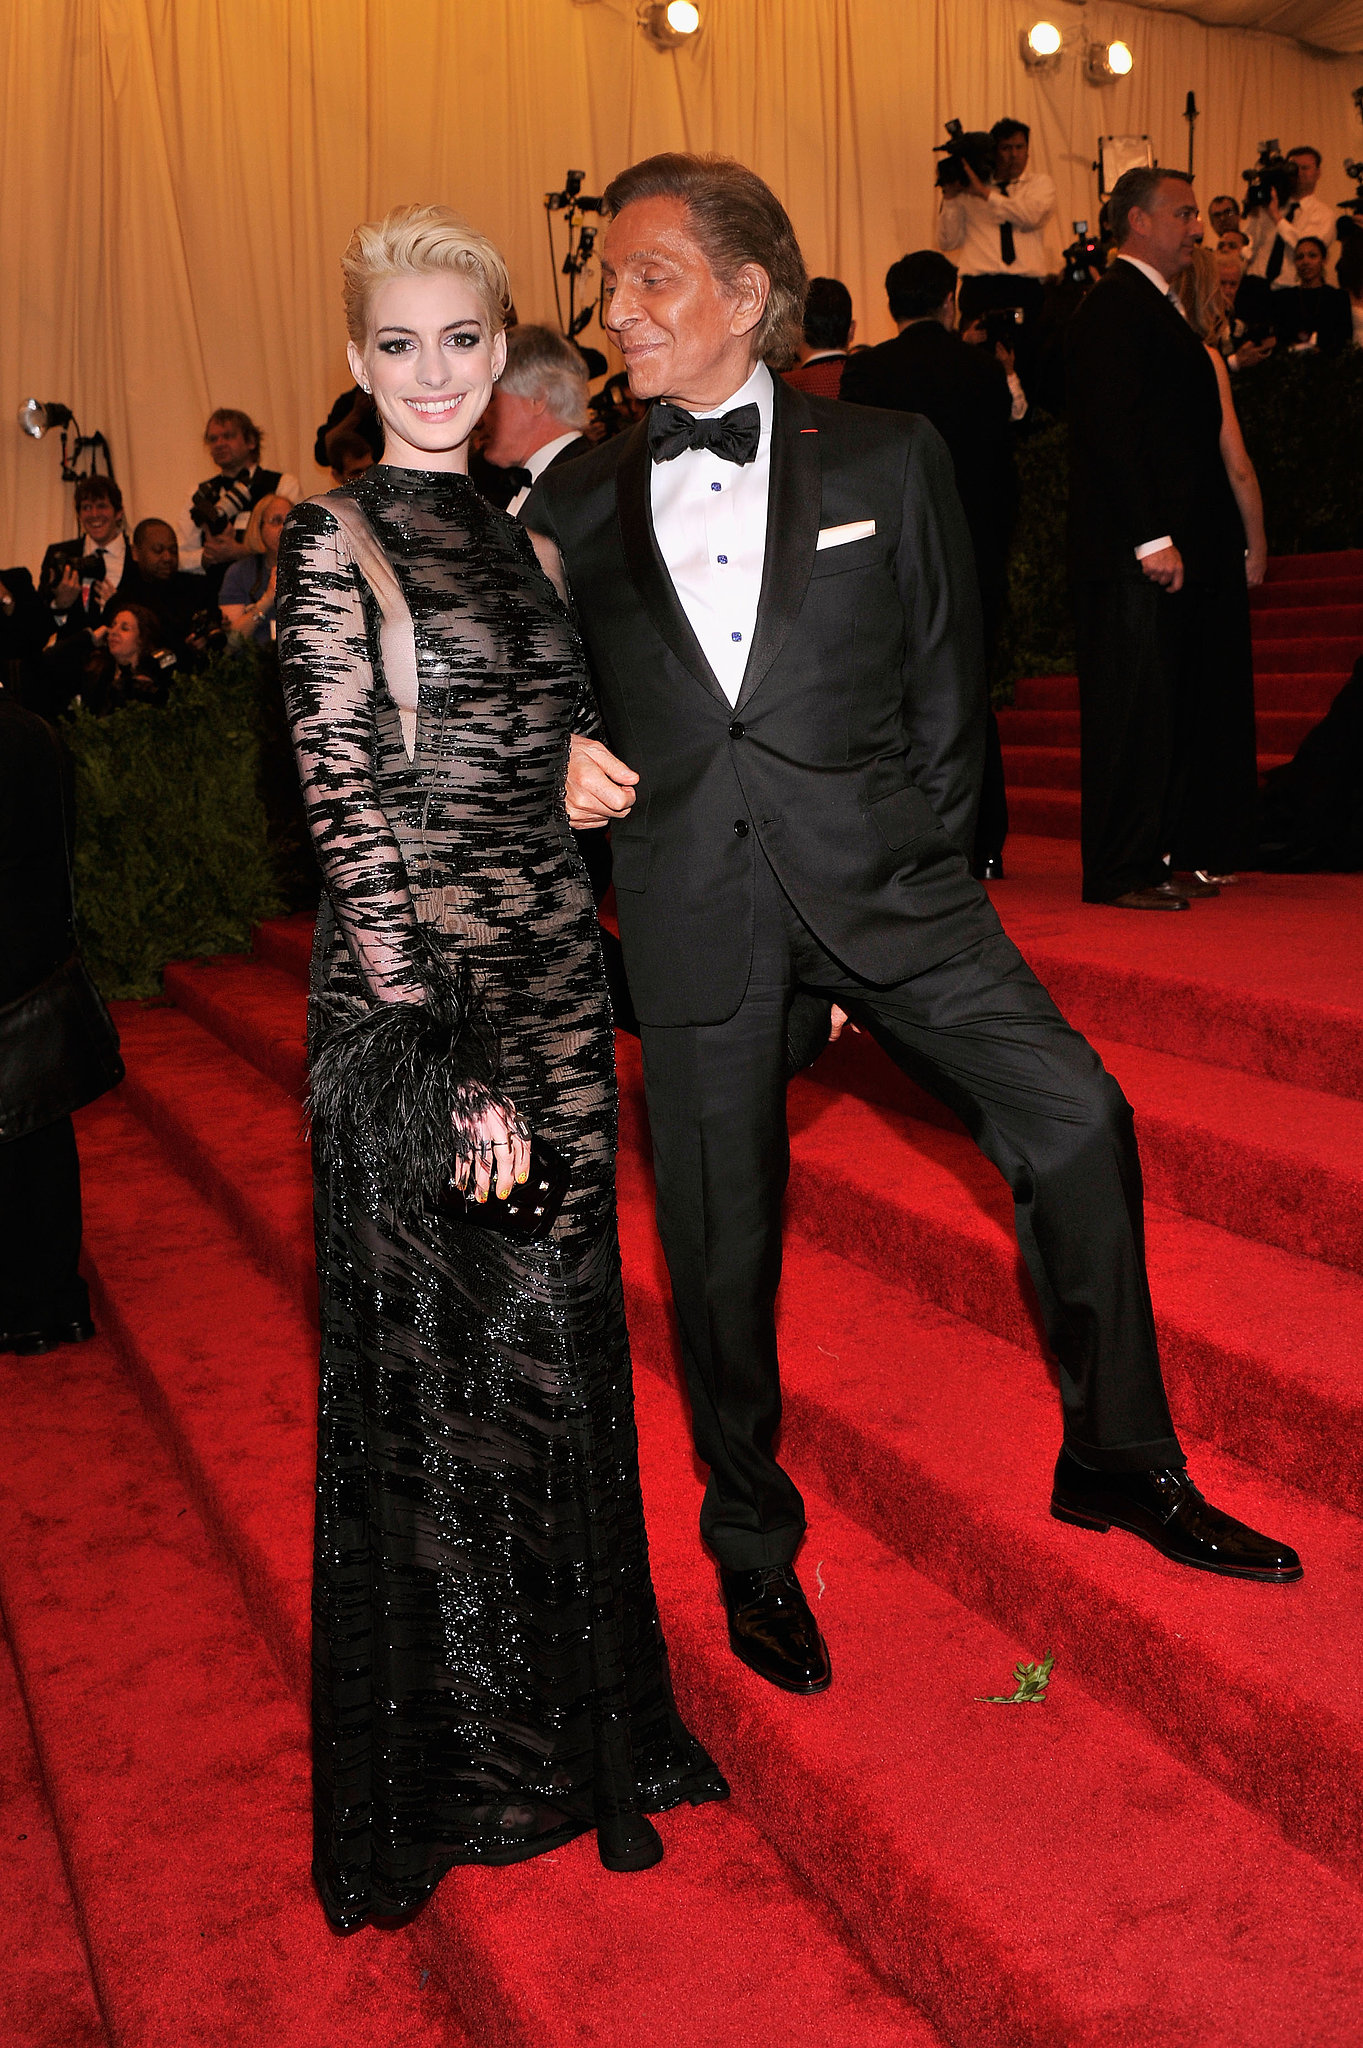 Anne Hathaway had Valentino's help navigating the steps.